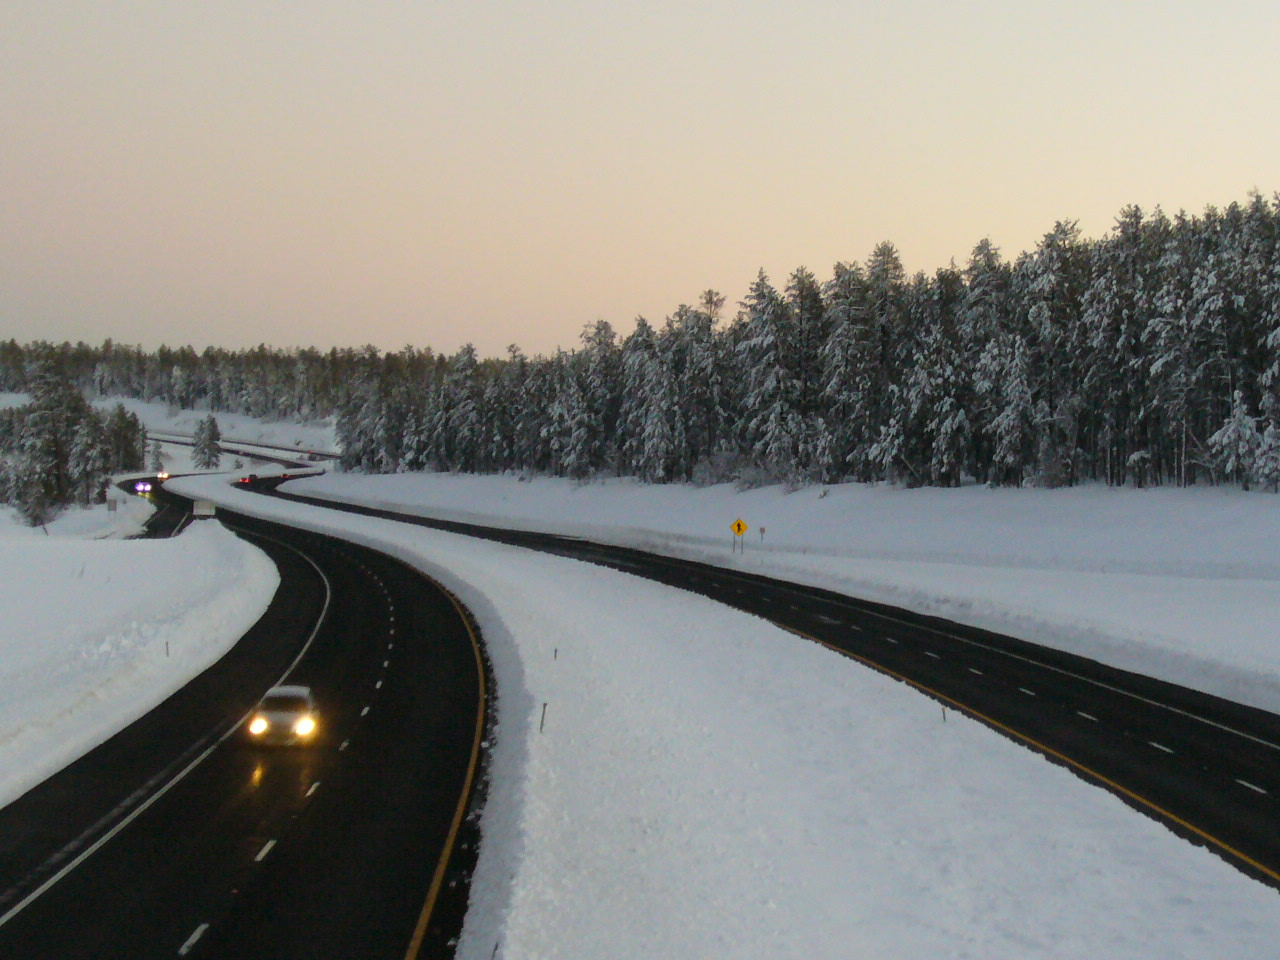 Highway winds through snowy landscape at sunset.